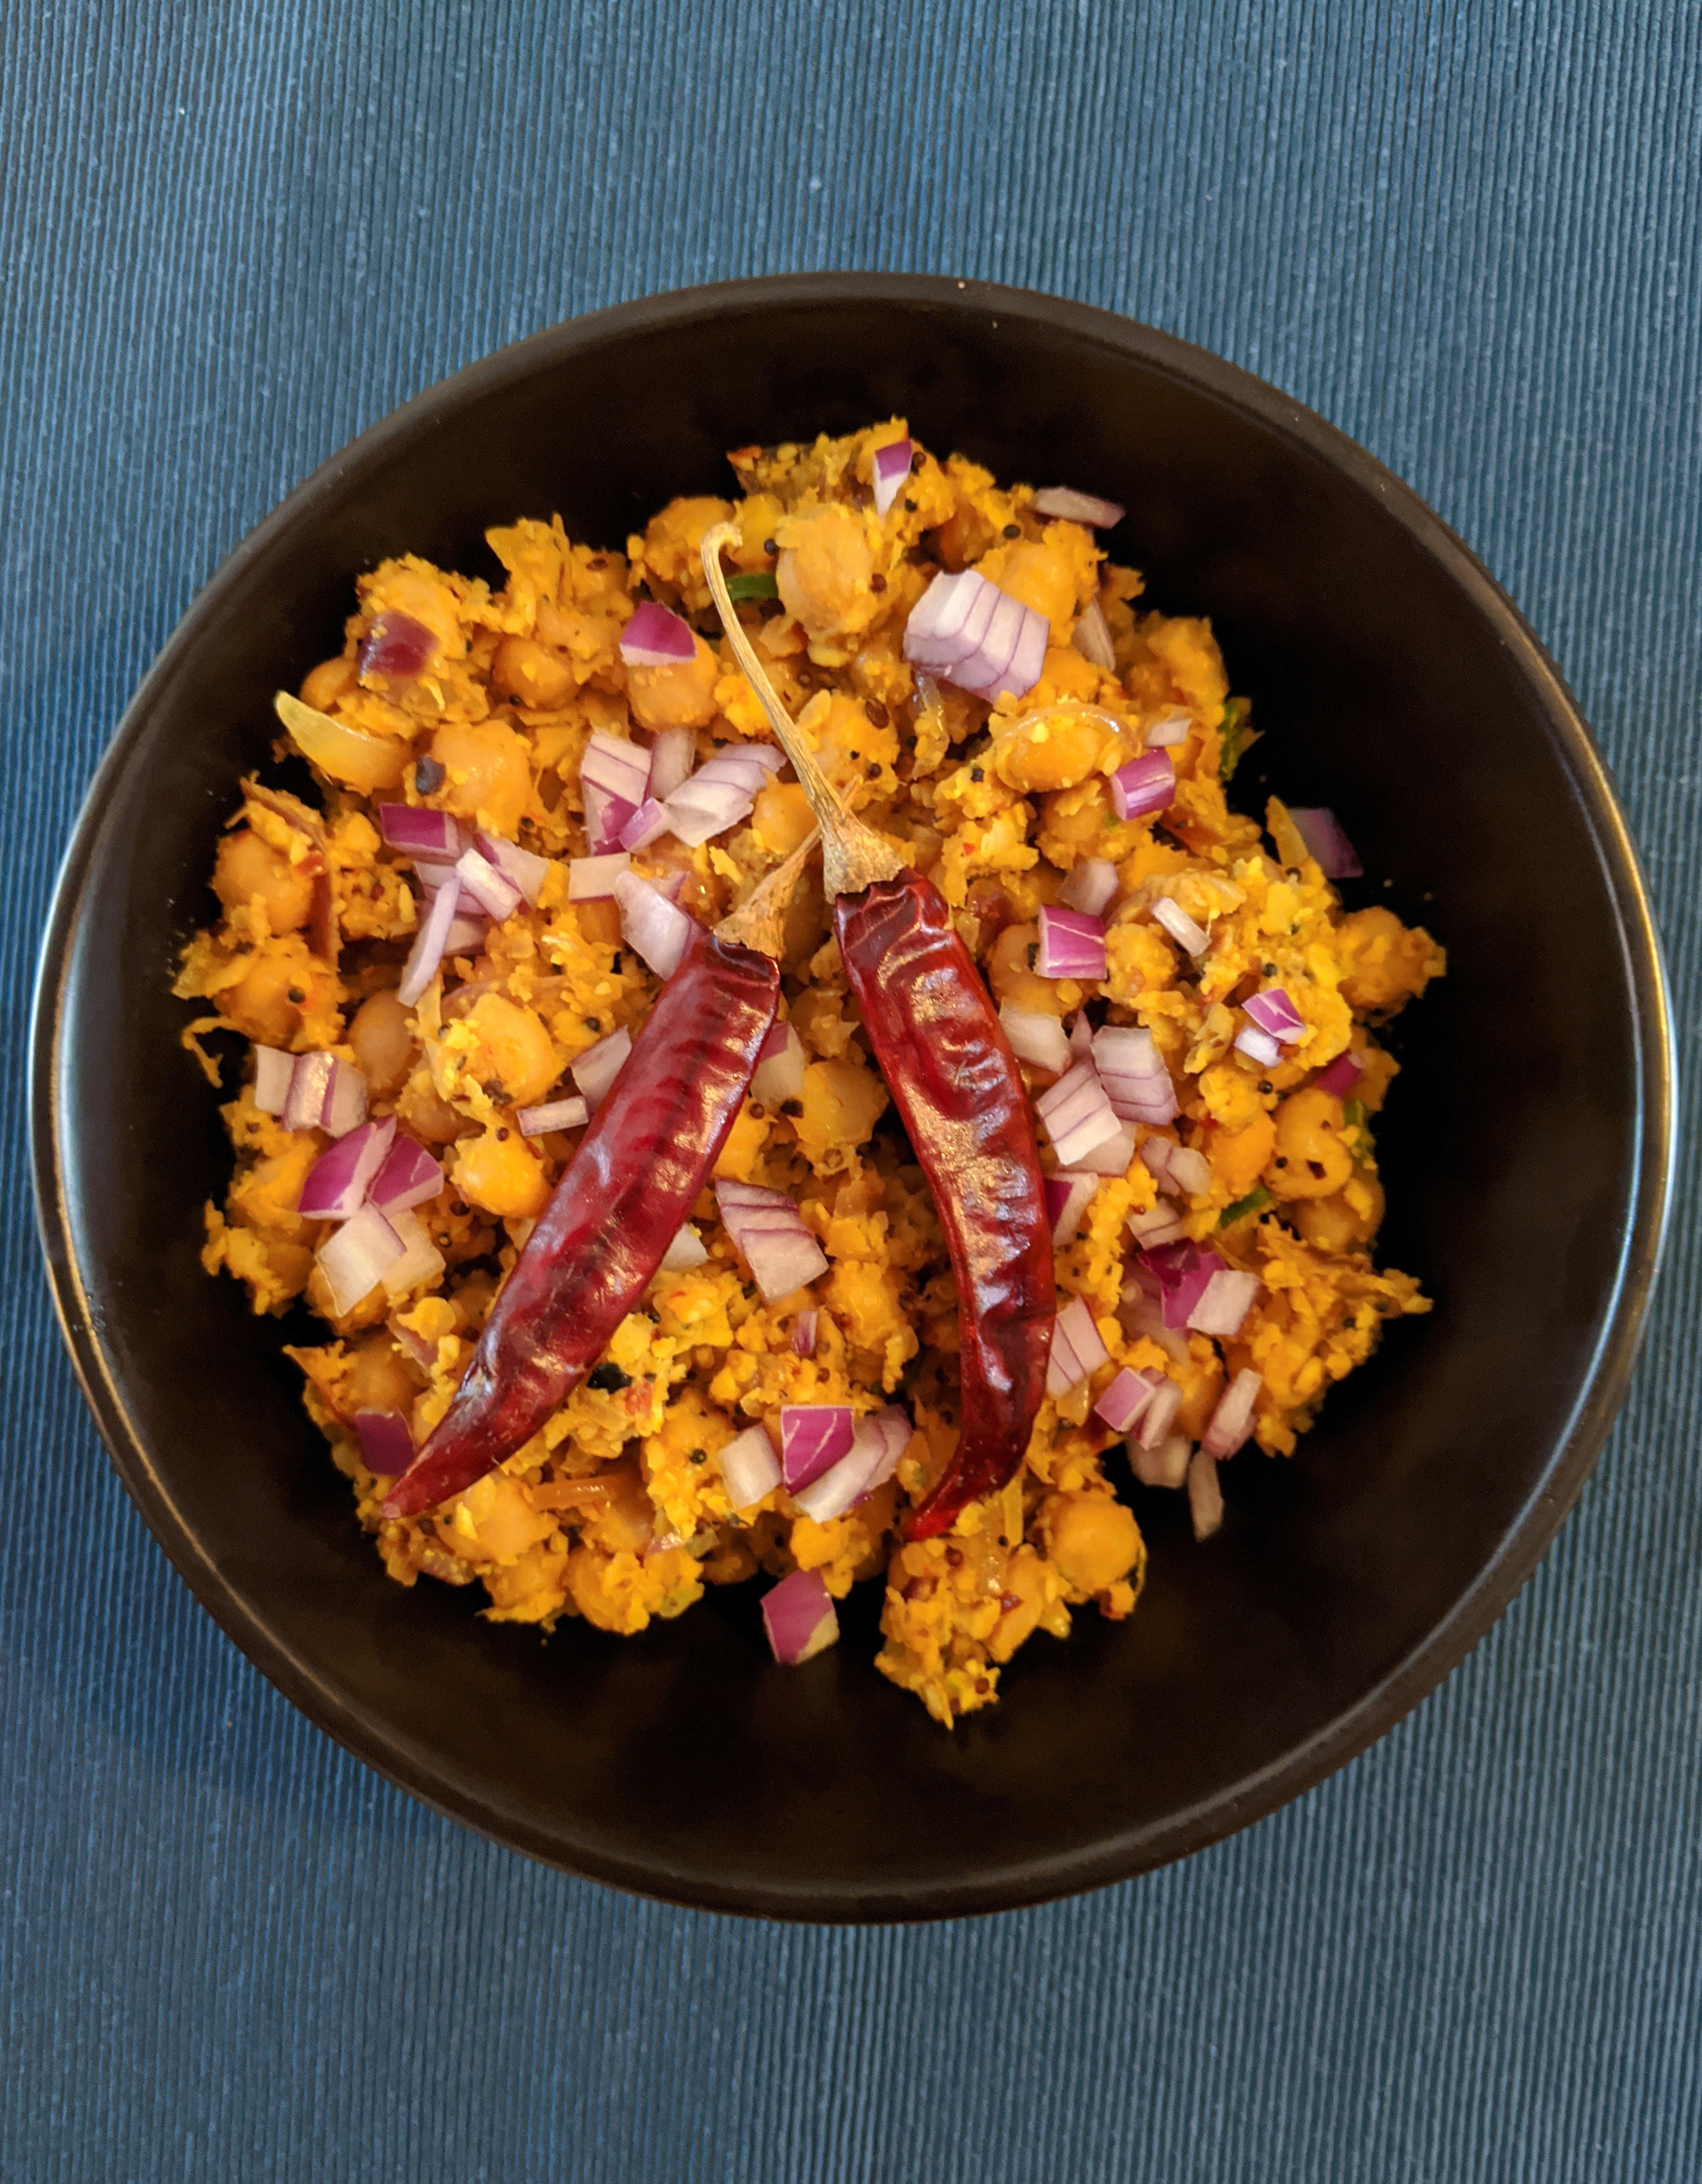 Tempered Chickpeas with Grated Coconut